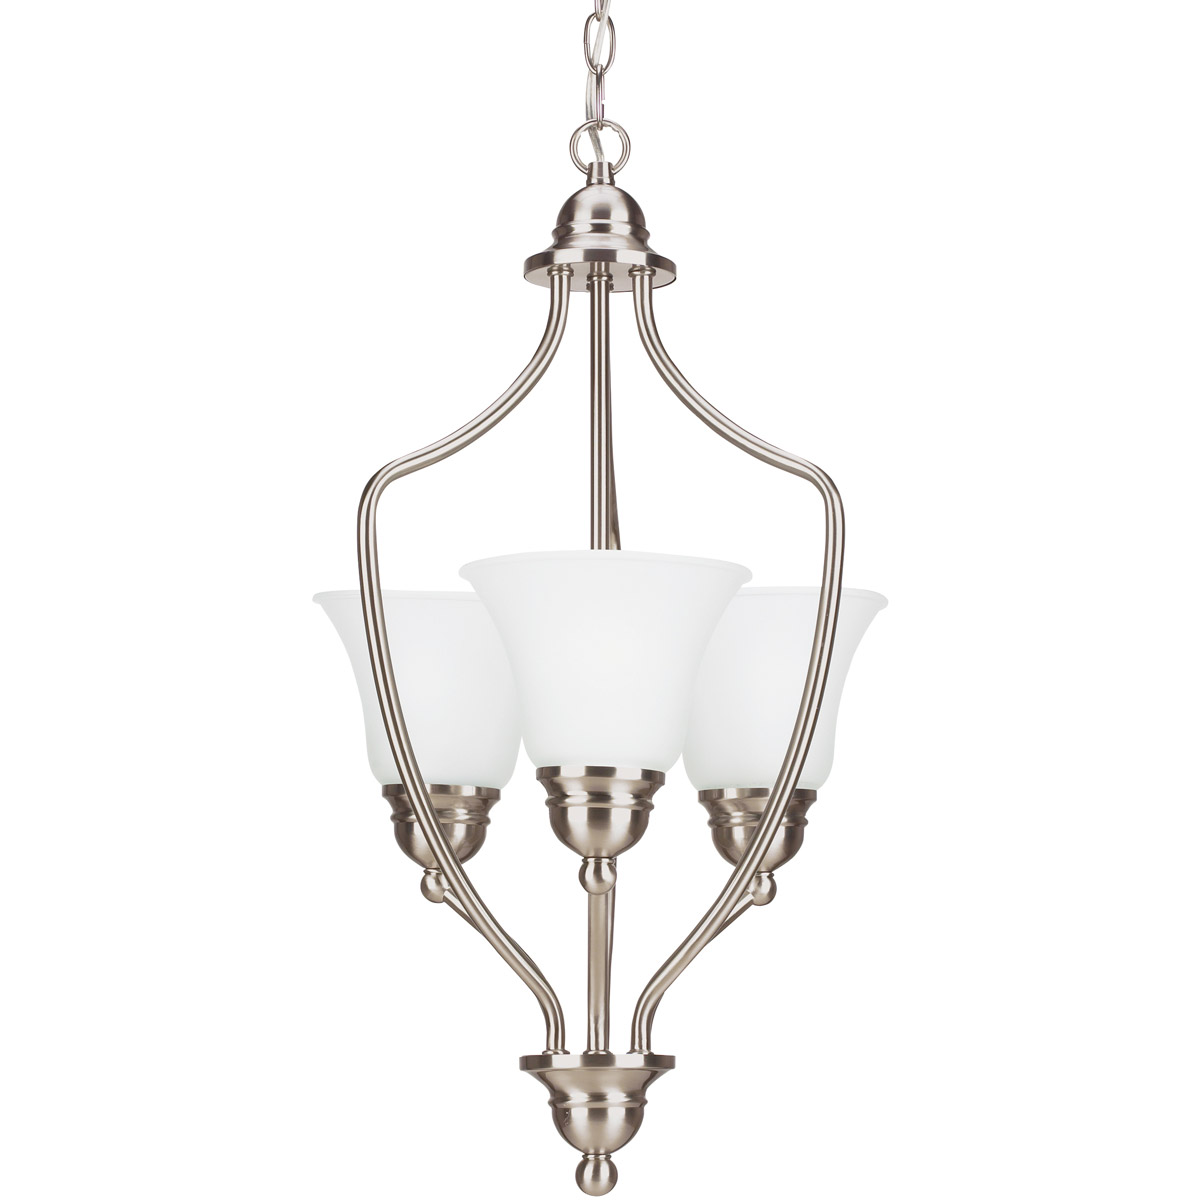 Sea Gull Lighting Signature 3 Light Foyer Pendant in Brushed Nickel 51410-962